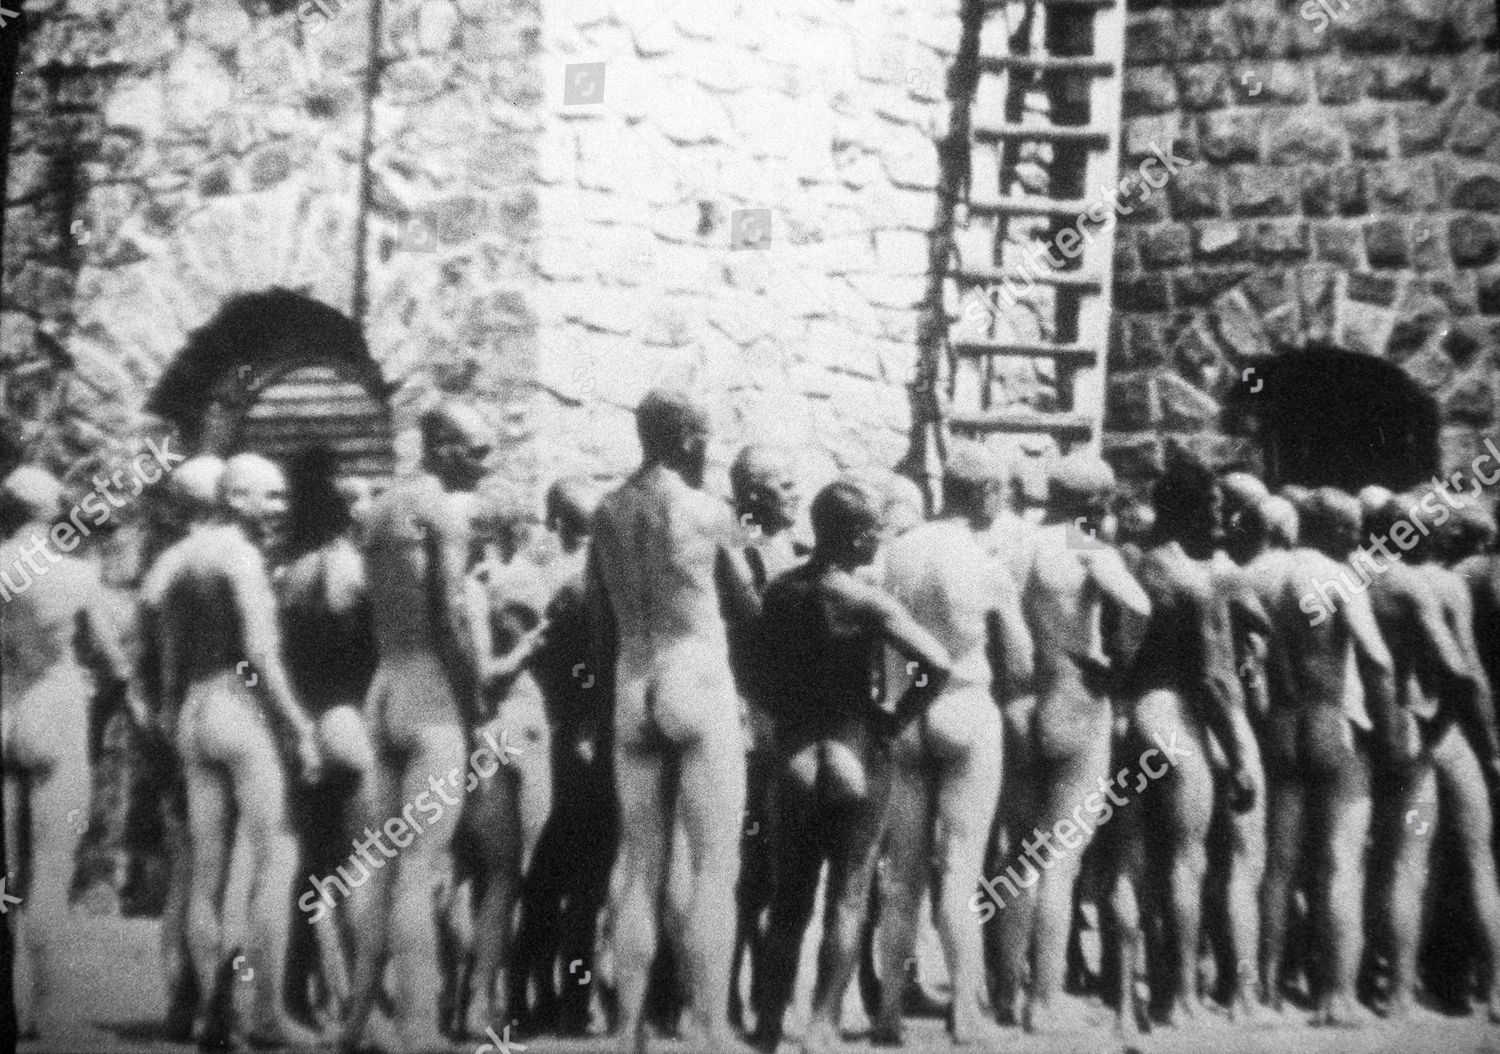 Concentration camp nudes, free xxx pussy pictors